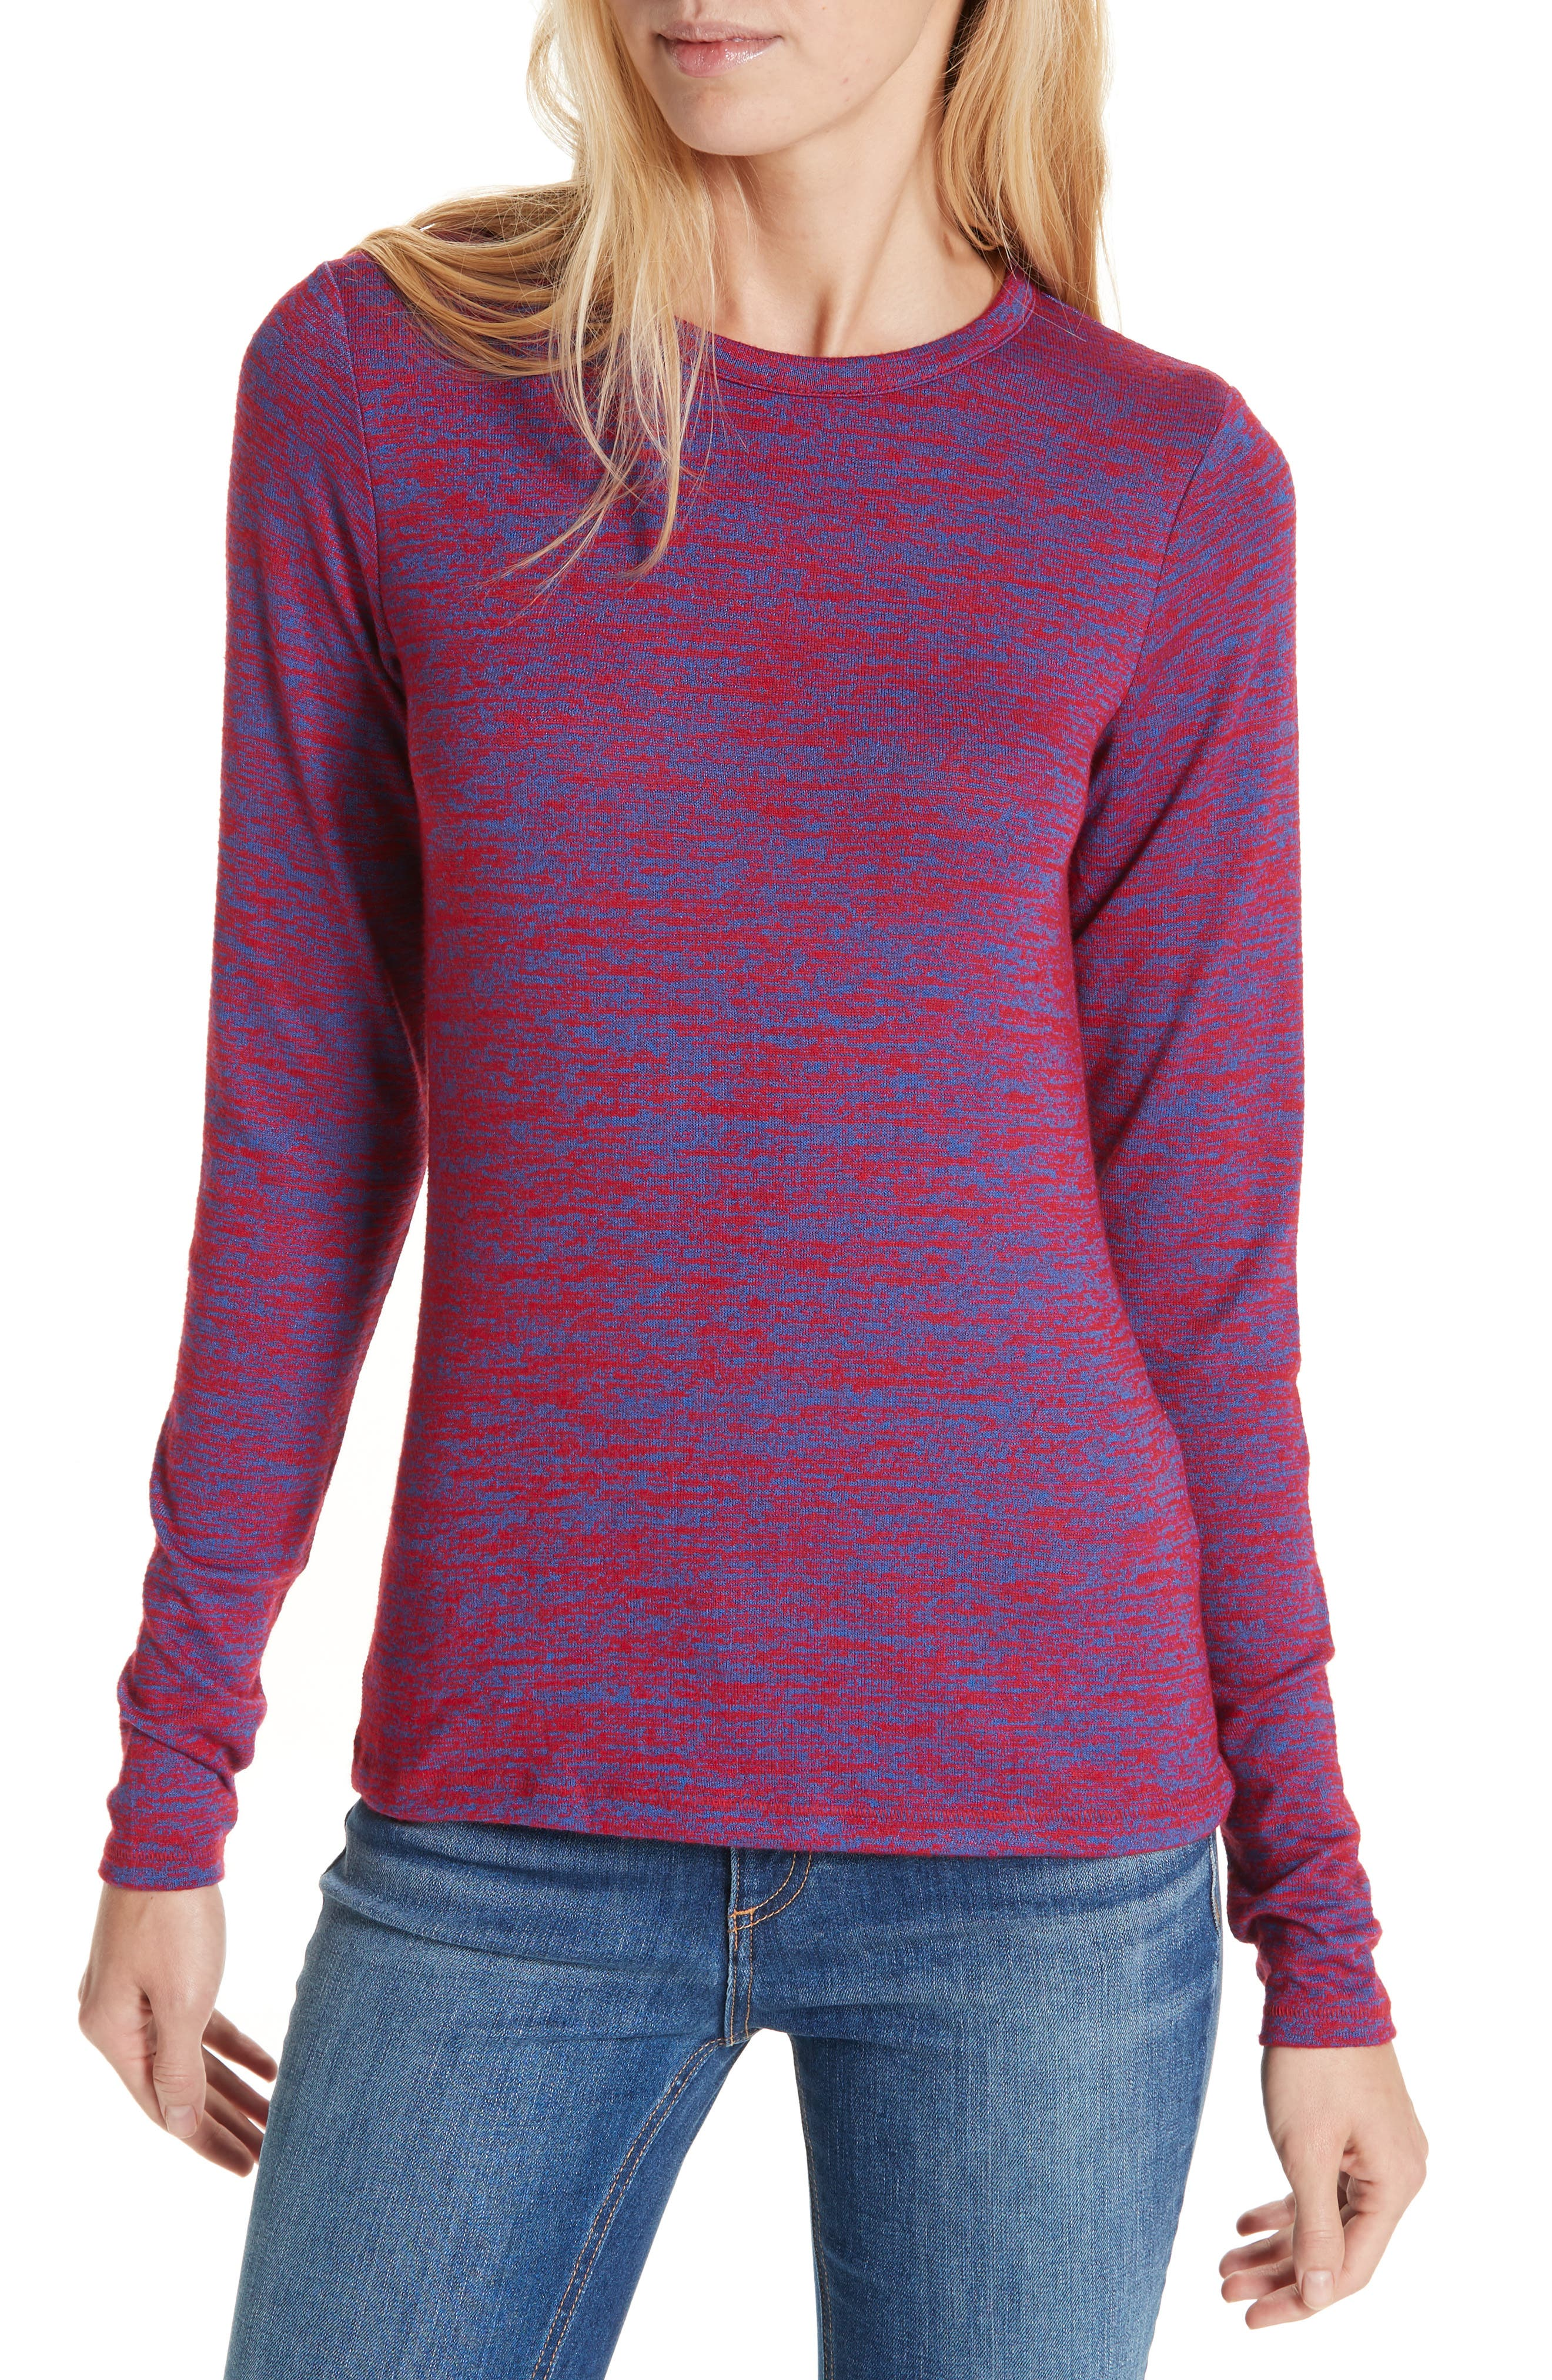 Crewneck Long-Sleeve Slim Patterned Jersey Tee in Red/Blue Multi